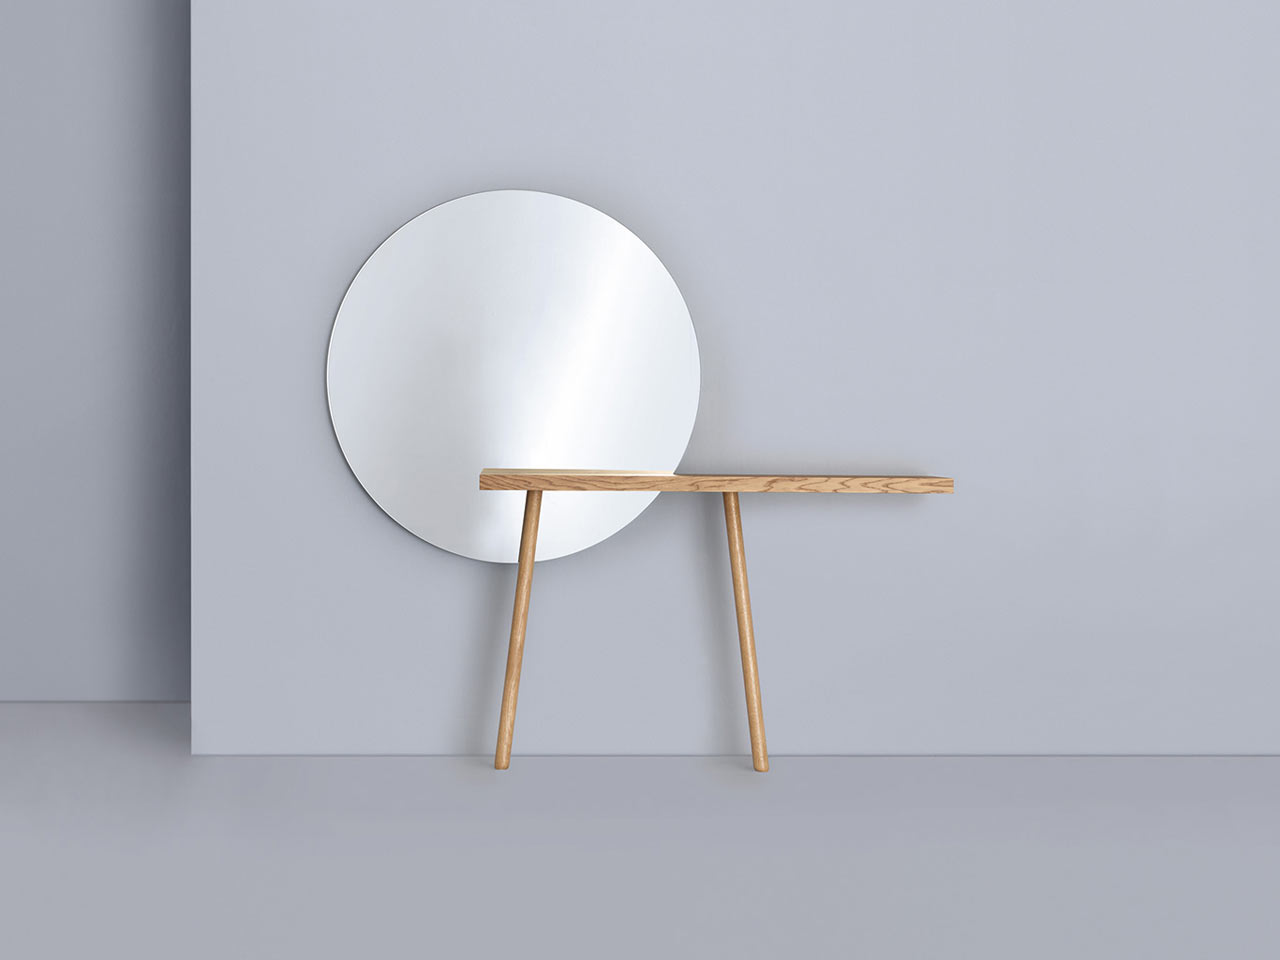 Merveilleux Carla U0026 Carlo: Dressing Tables By Florian Schmid ...